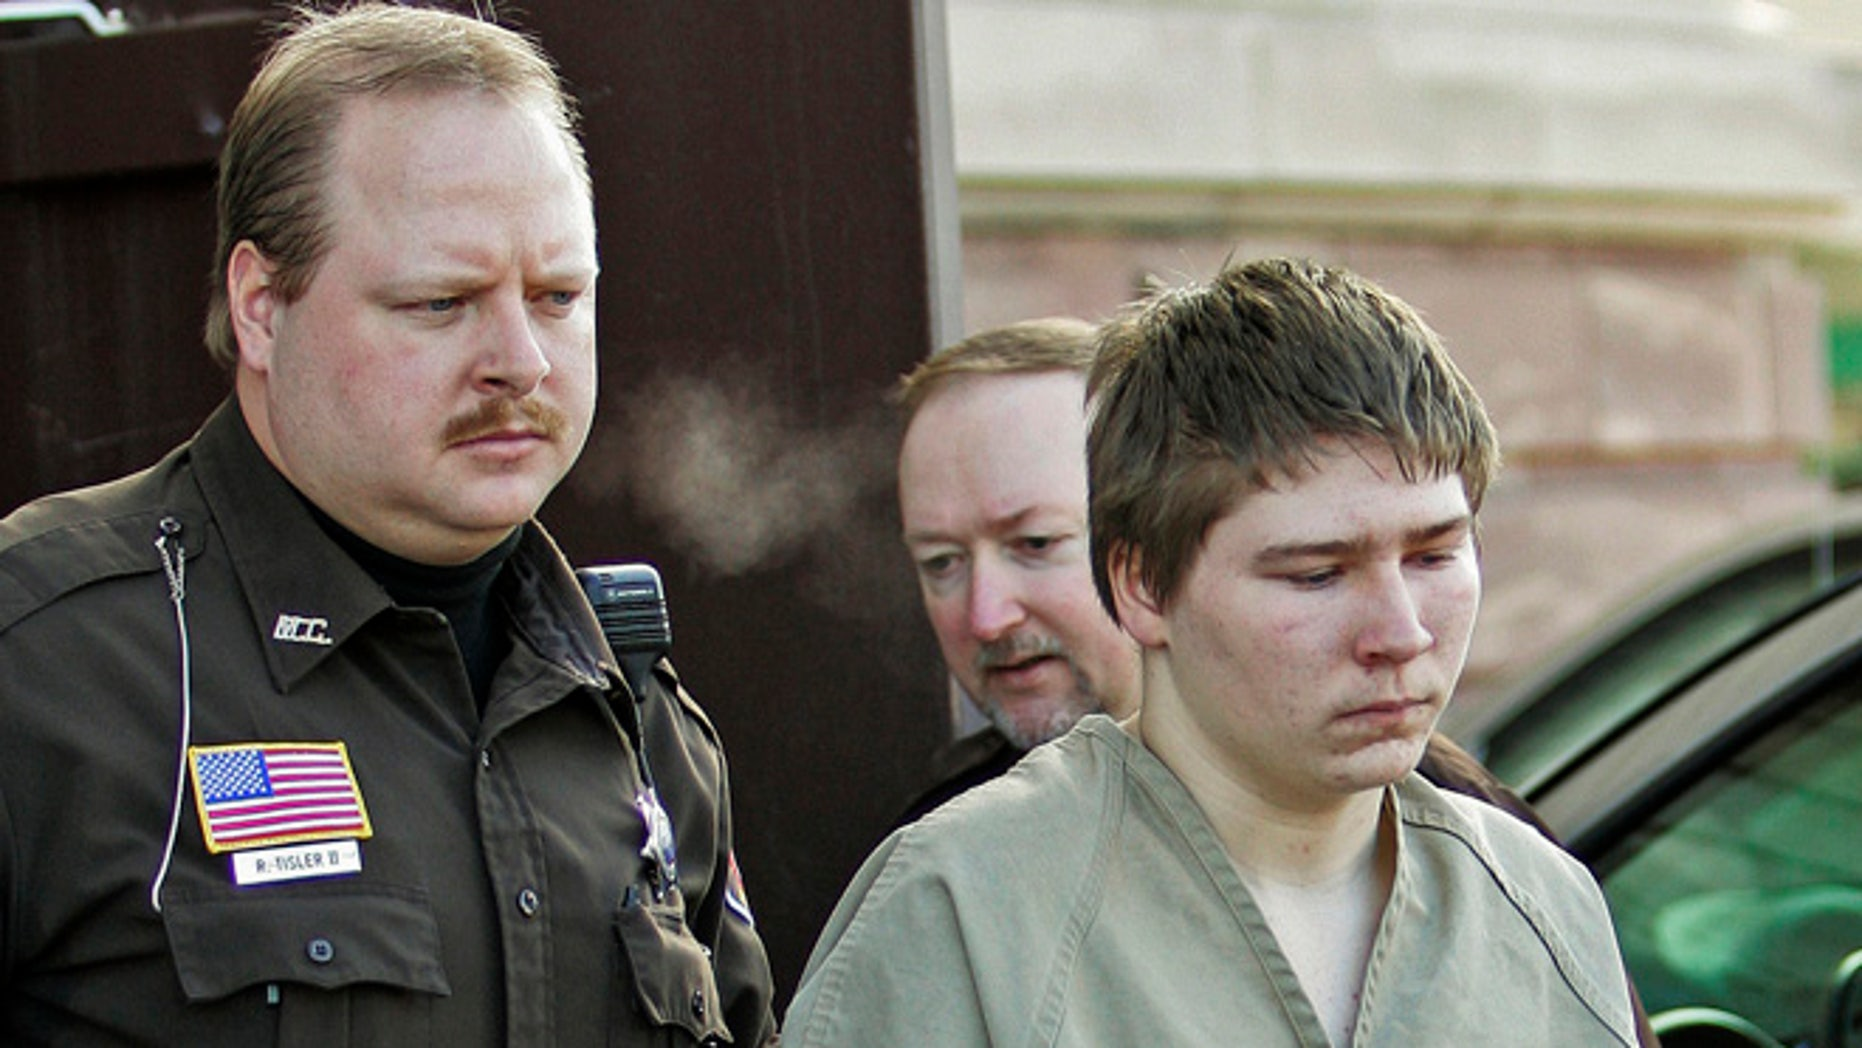 Brendan Dassey, pictured here in 2006, was convicted of helping his uncle kill a woman in a case profiled in the popular Netflix series.